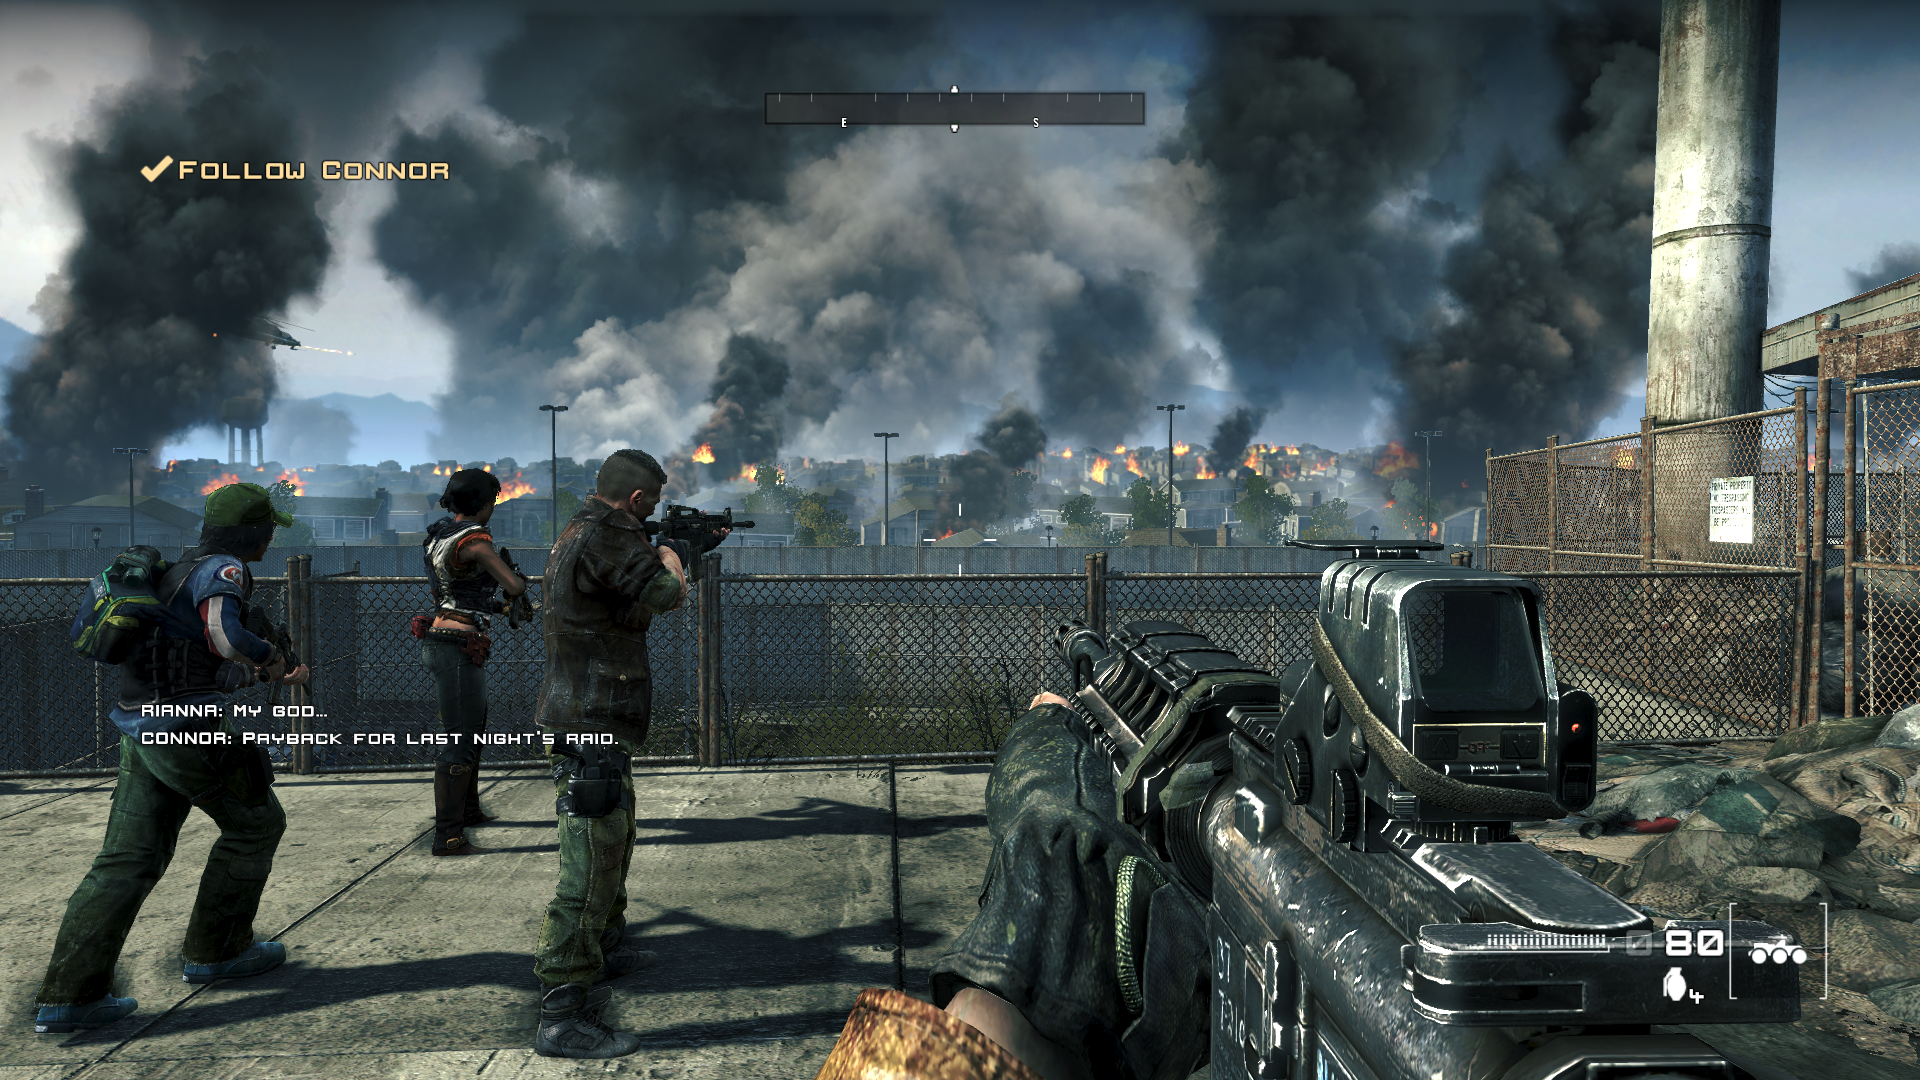 Homefront Windows Our Neighbourhood. Things Are Getting Worse From Hour To Hour. - Homefront Video Game, Transparent background PNG HD thumbnail